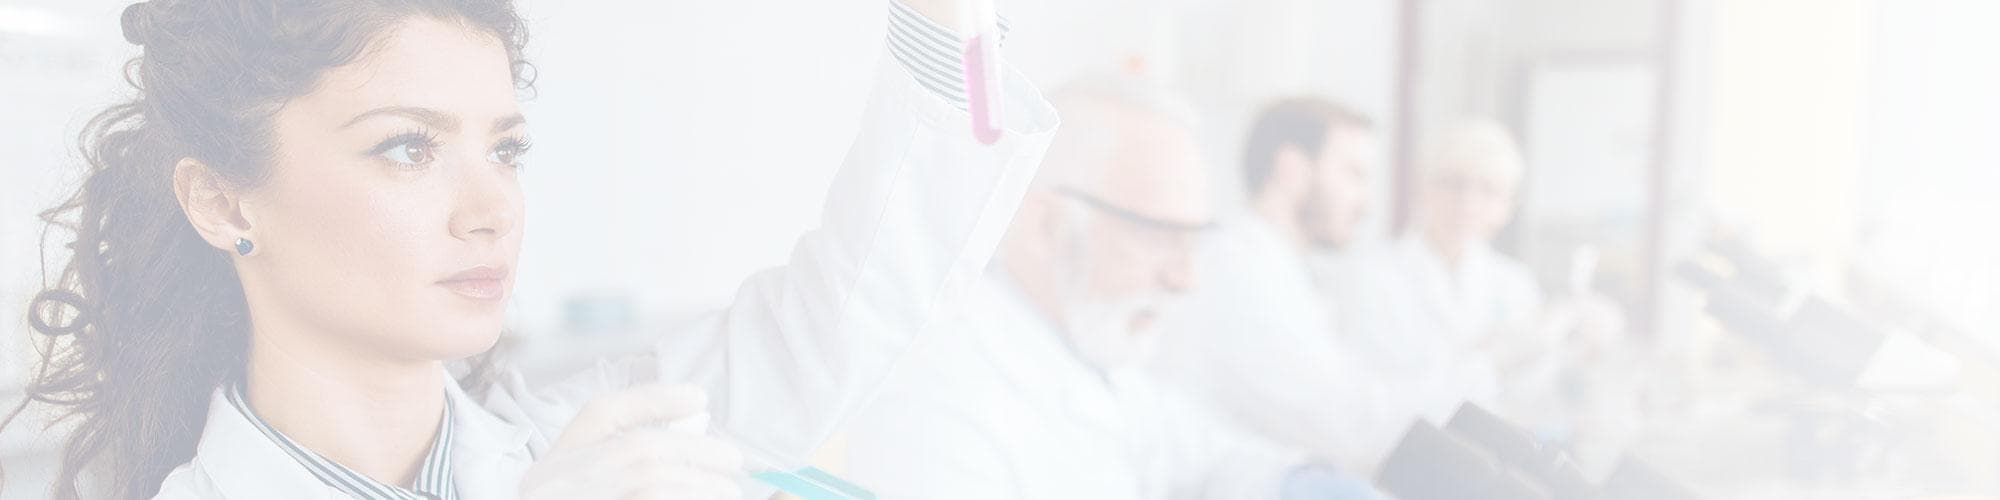 Scientists and researchers in lab